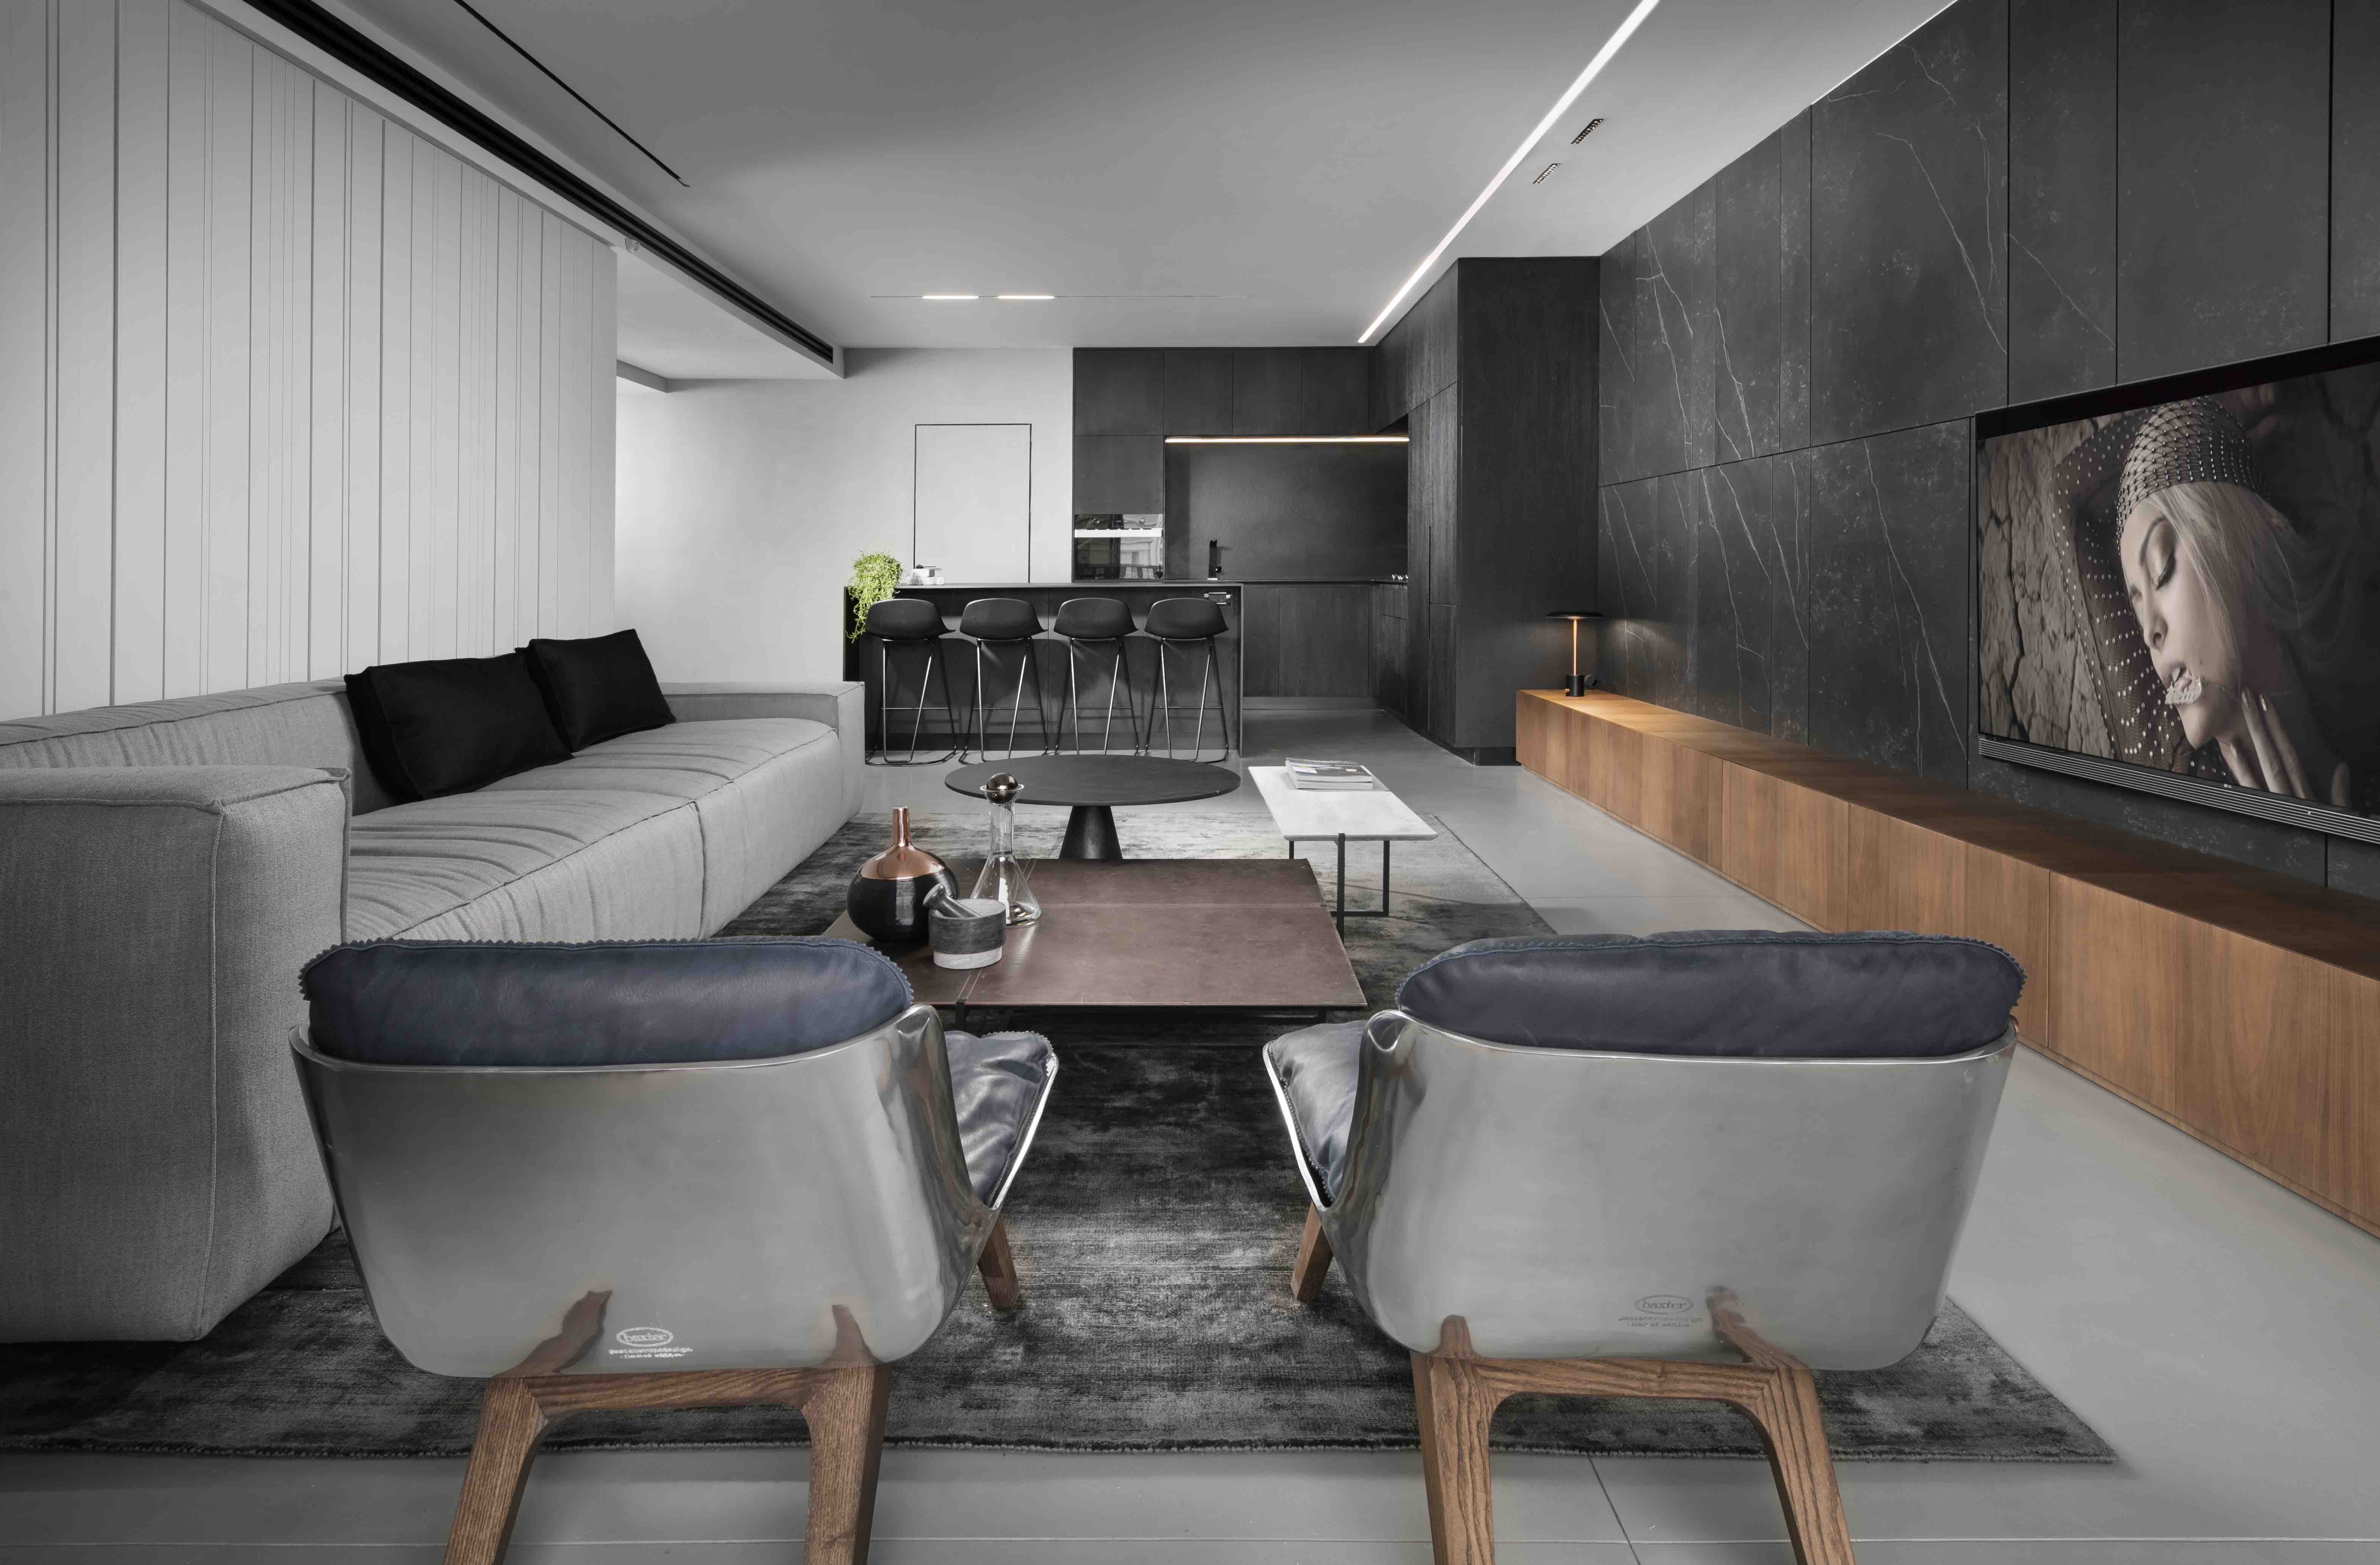 """Apartment renovation """"The Continued Dialogue""""  by Erez Hyatt"""